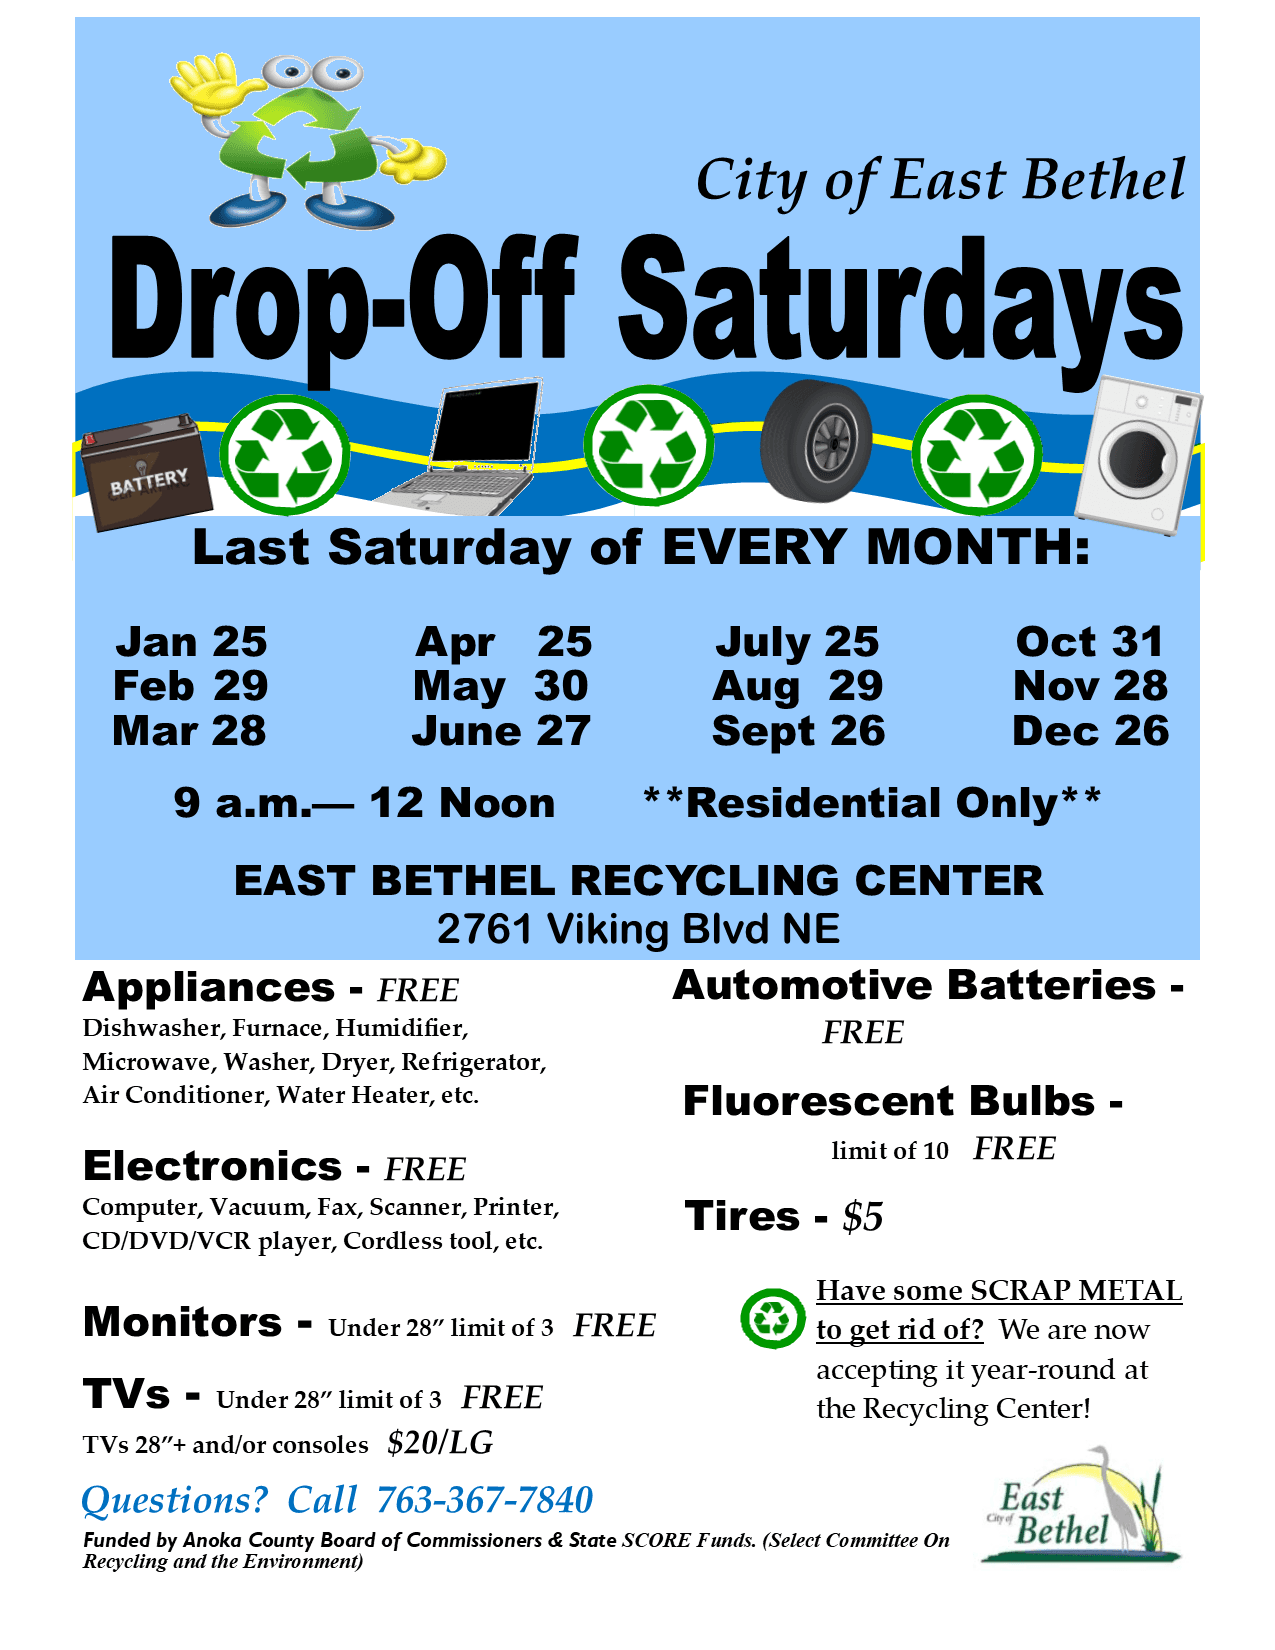 DropOff Saturday Flyer - Jan-Dec 2020